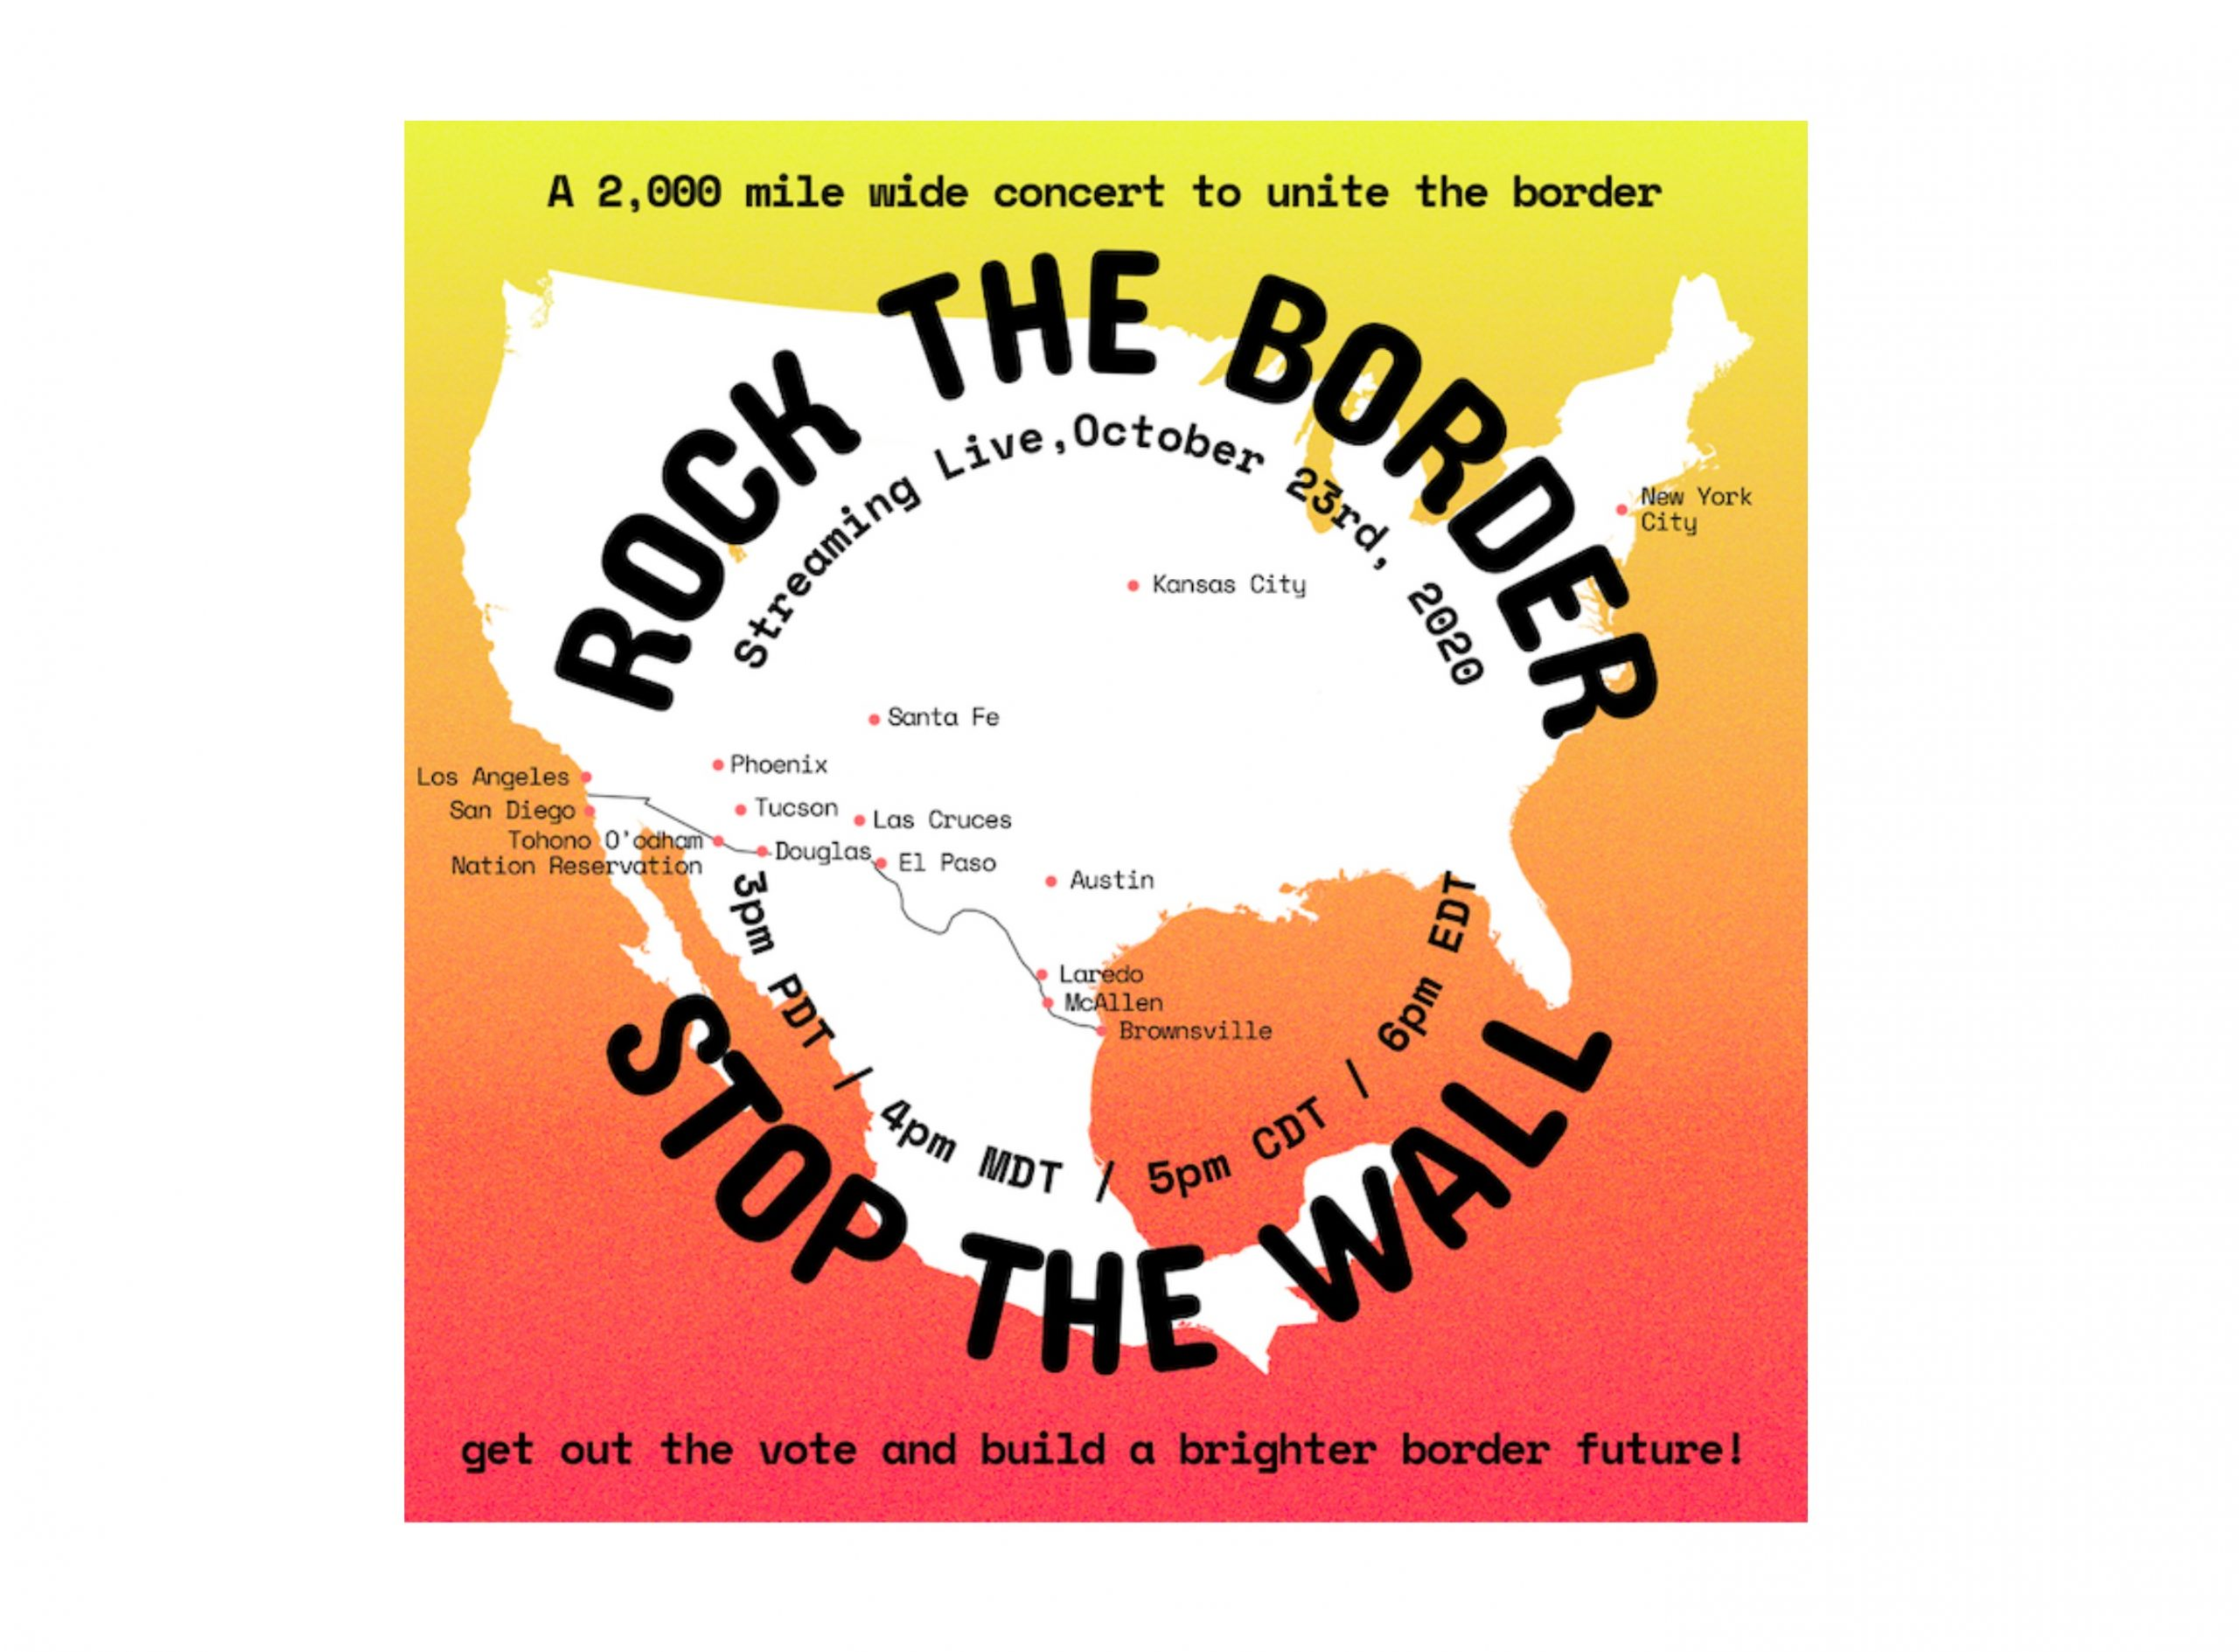 Rock the Border